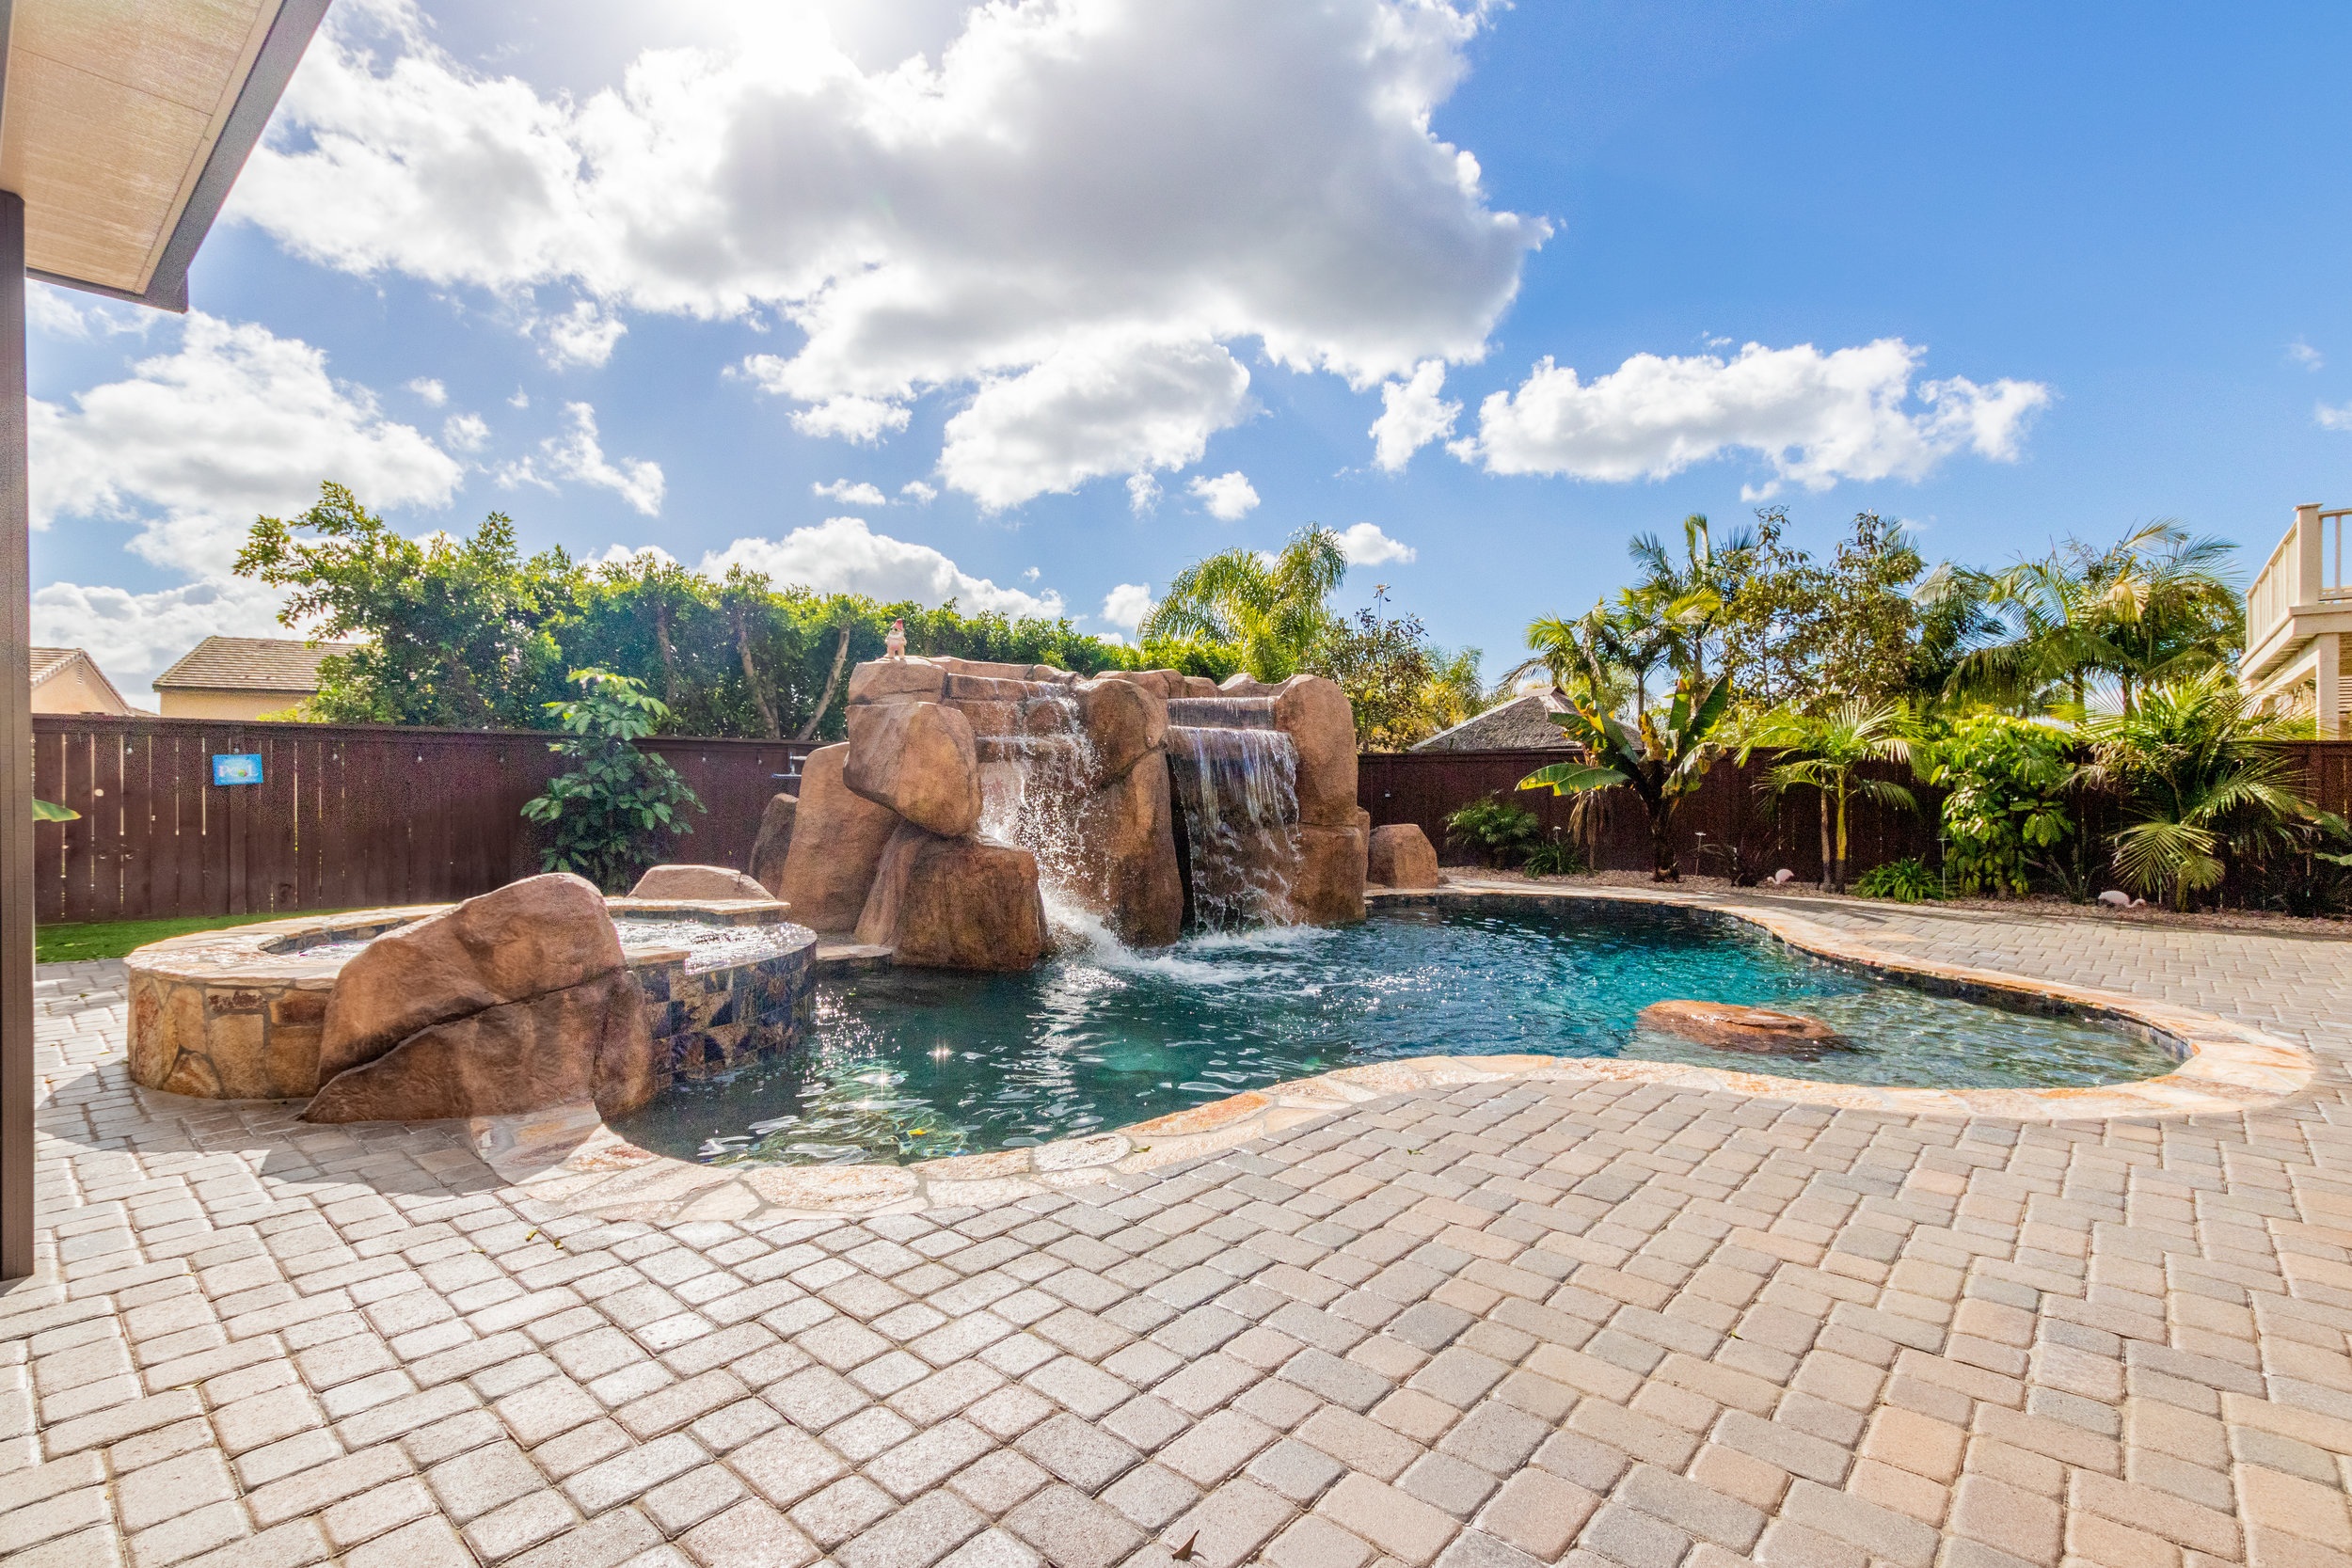 Creating An Oasis Of Serenity In Your Backyard — California Pools